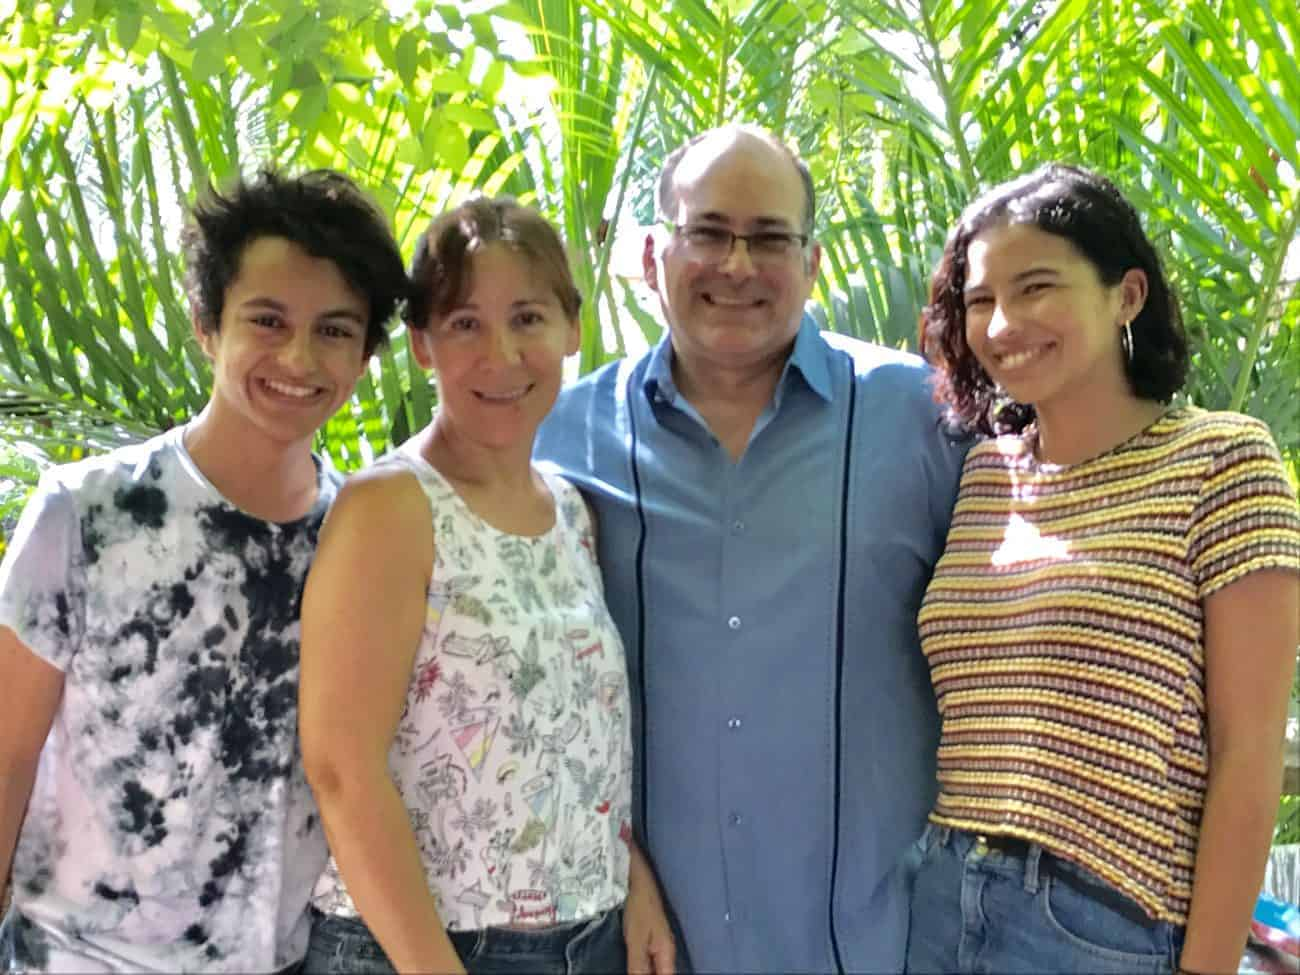 Caribbean Soaps Family with owner Alexis Sotomayor